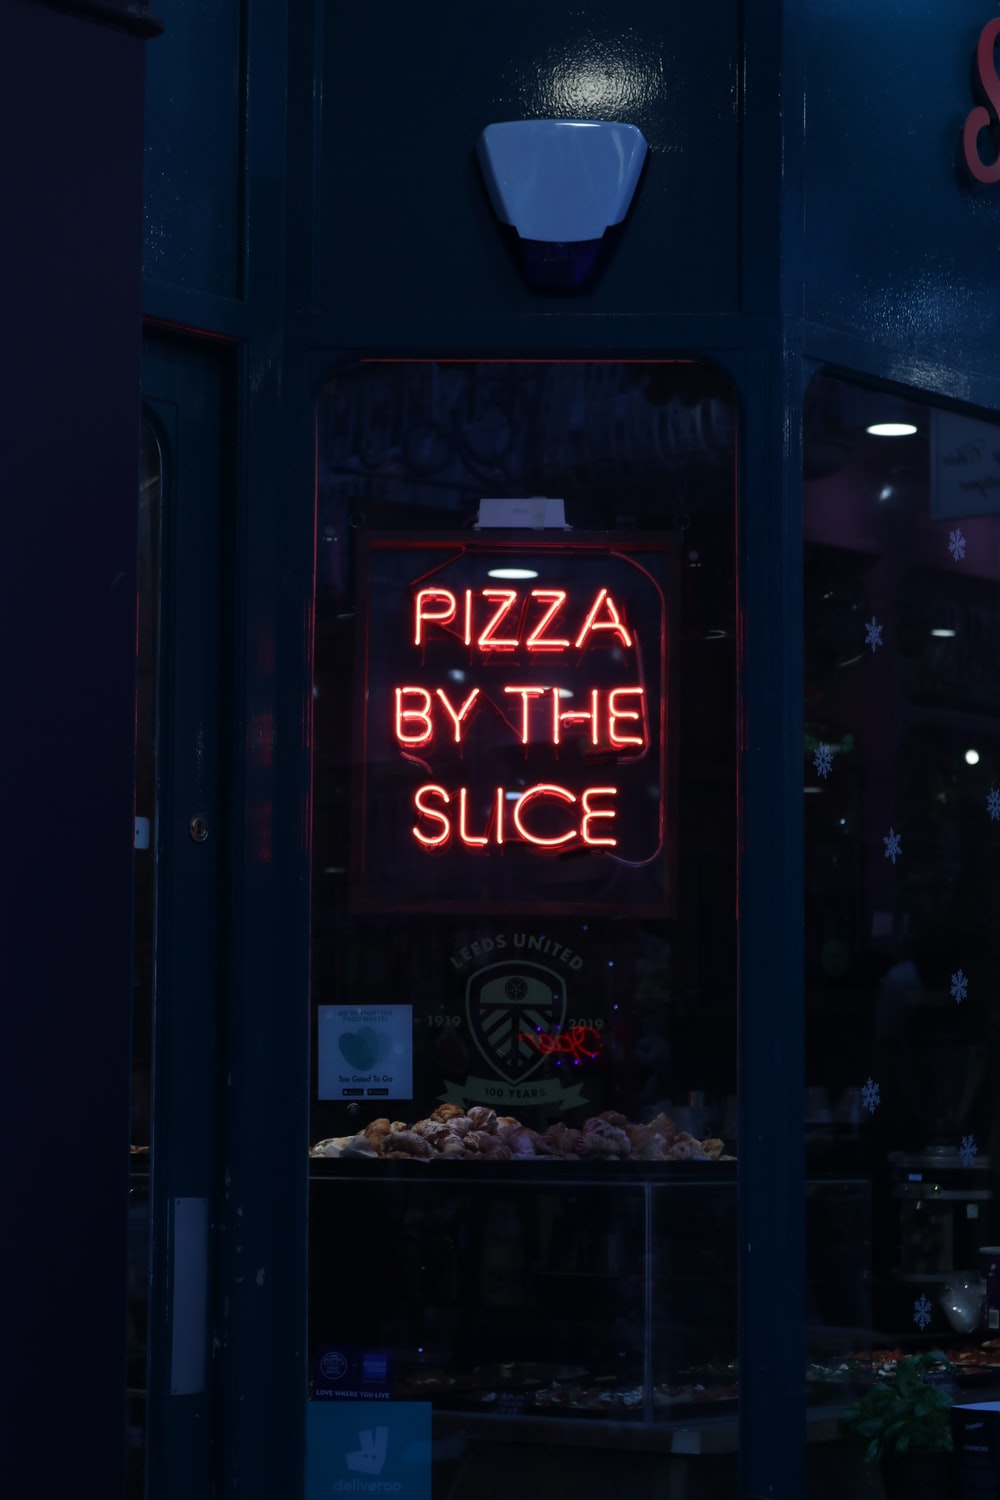 Pizza By the Slice neon signage